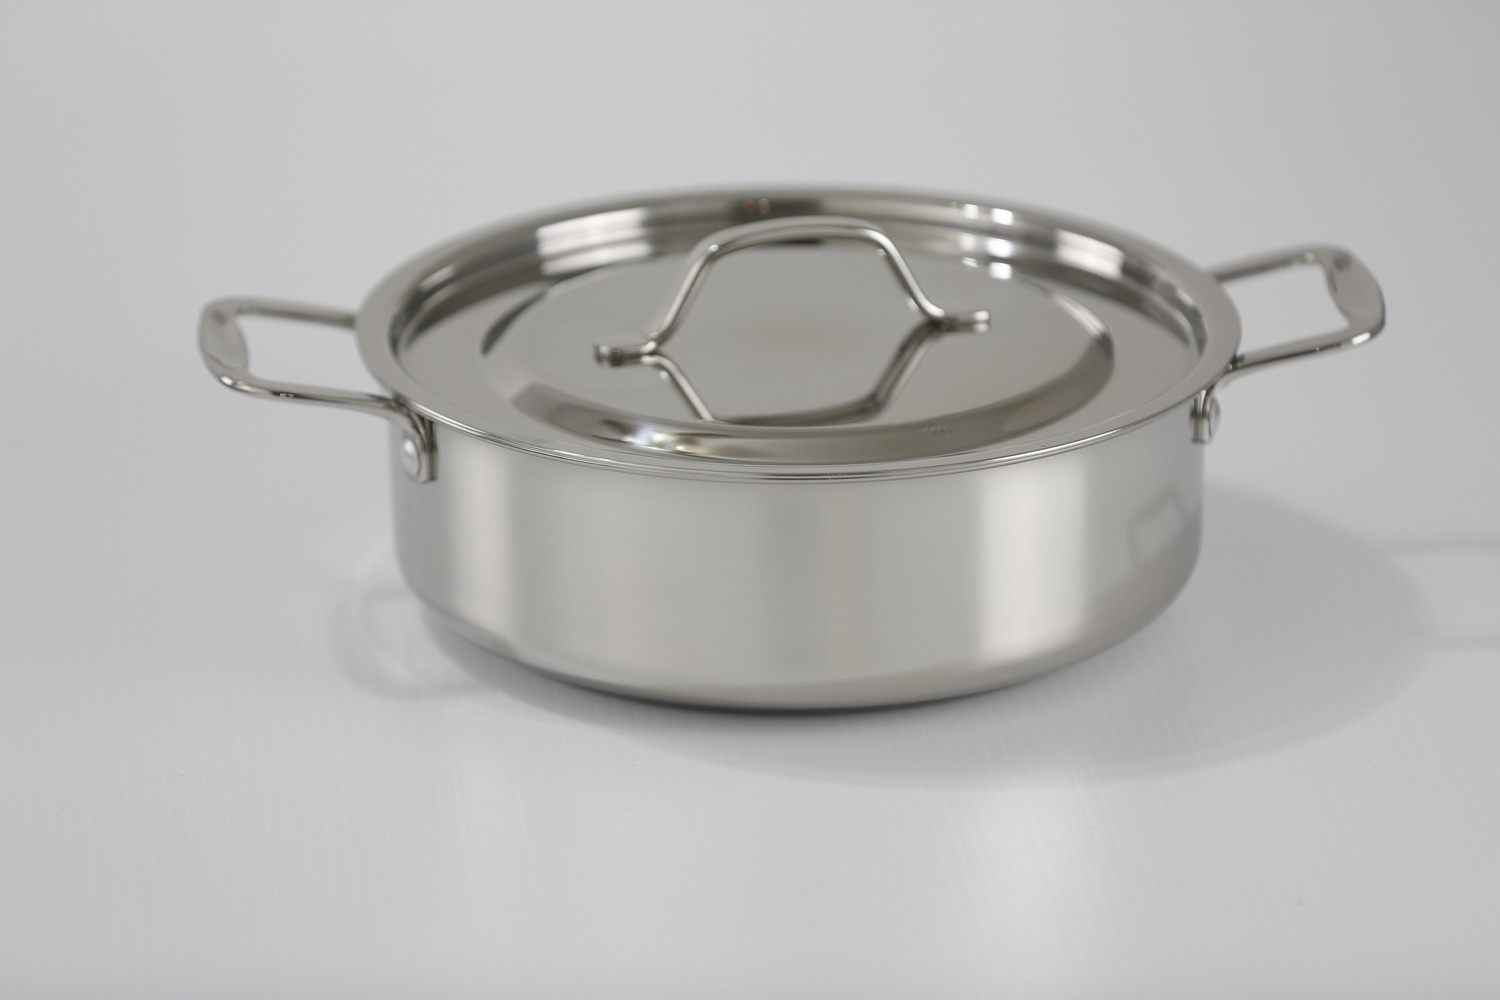 SS1-6.34 Qt. Stainless Steel Sauteuse Pan with cover